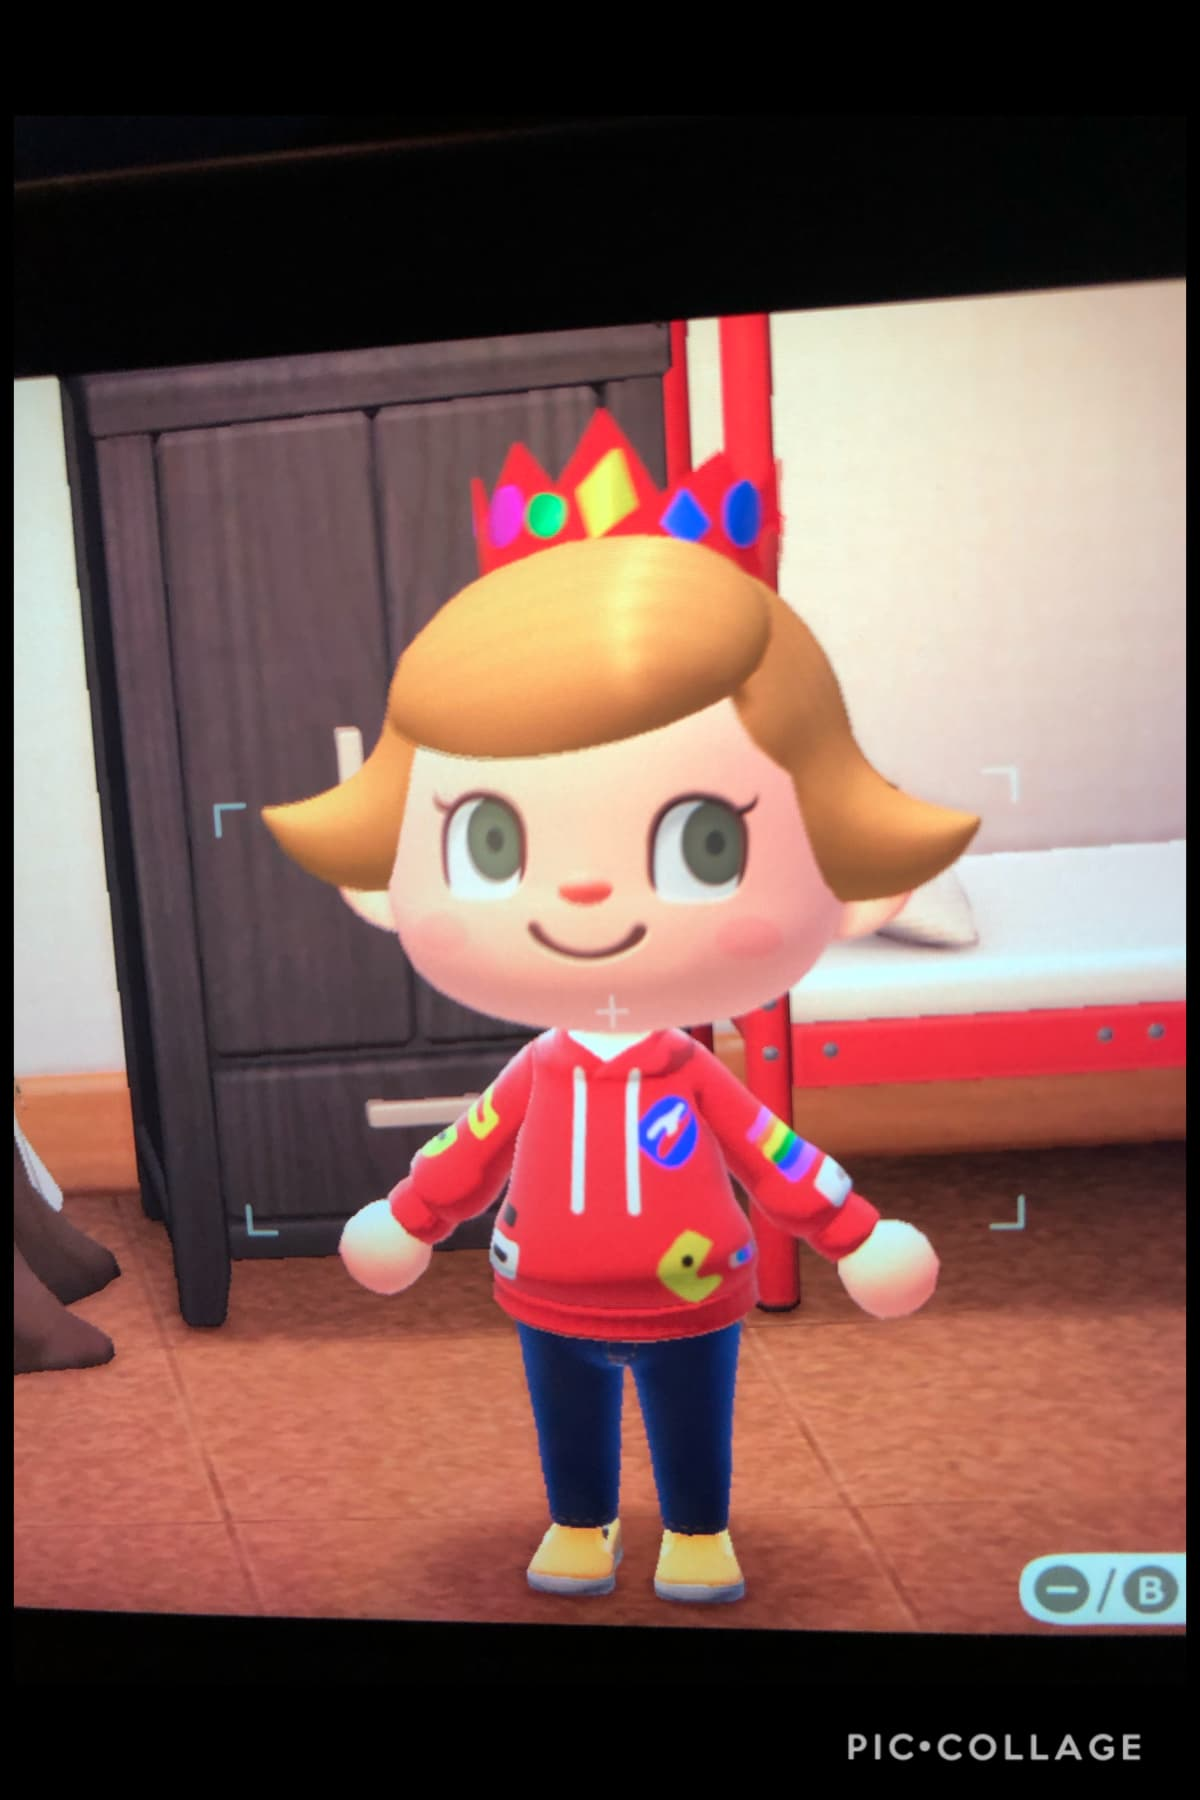 I also made Michael Mell's Hoodie in animal crossing:)